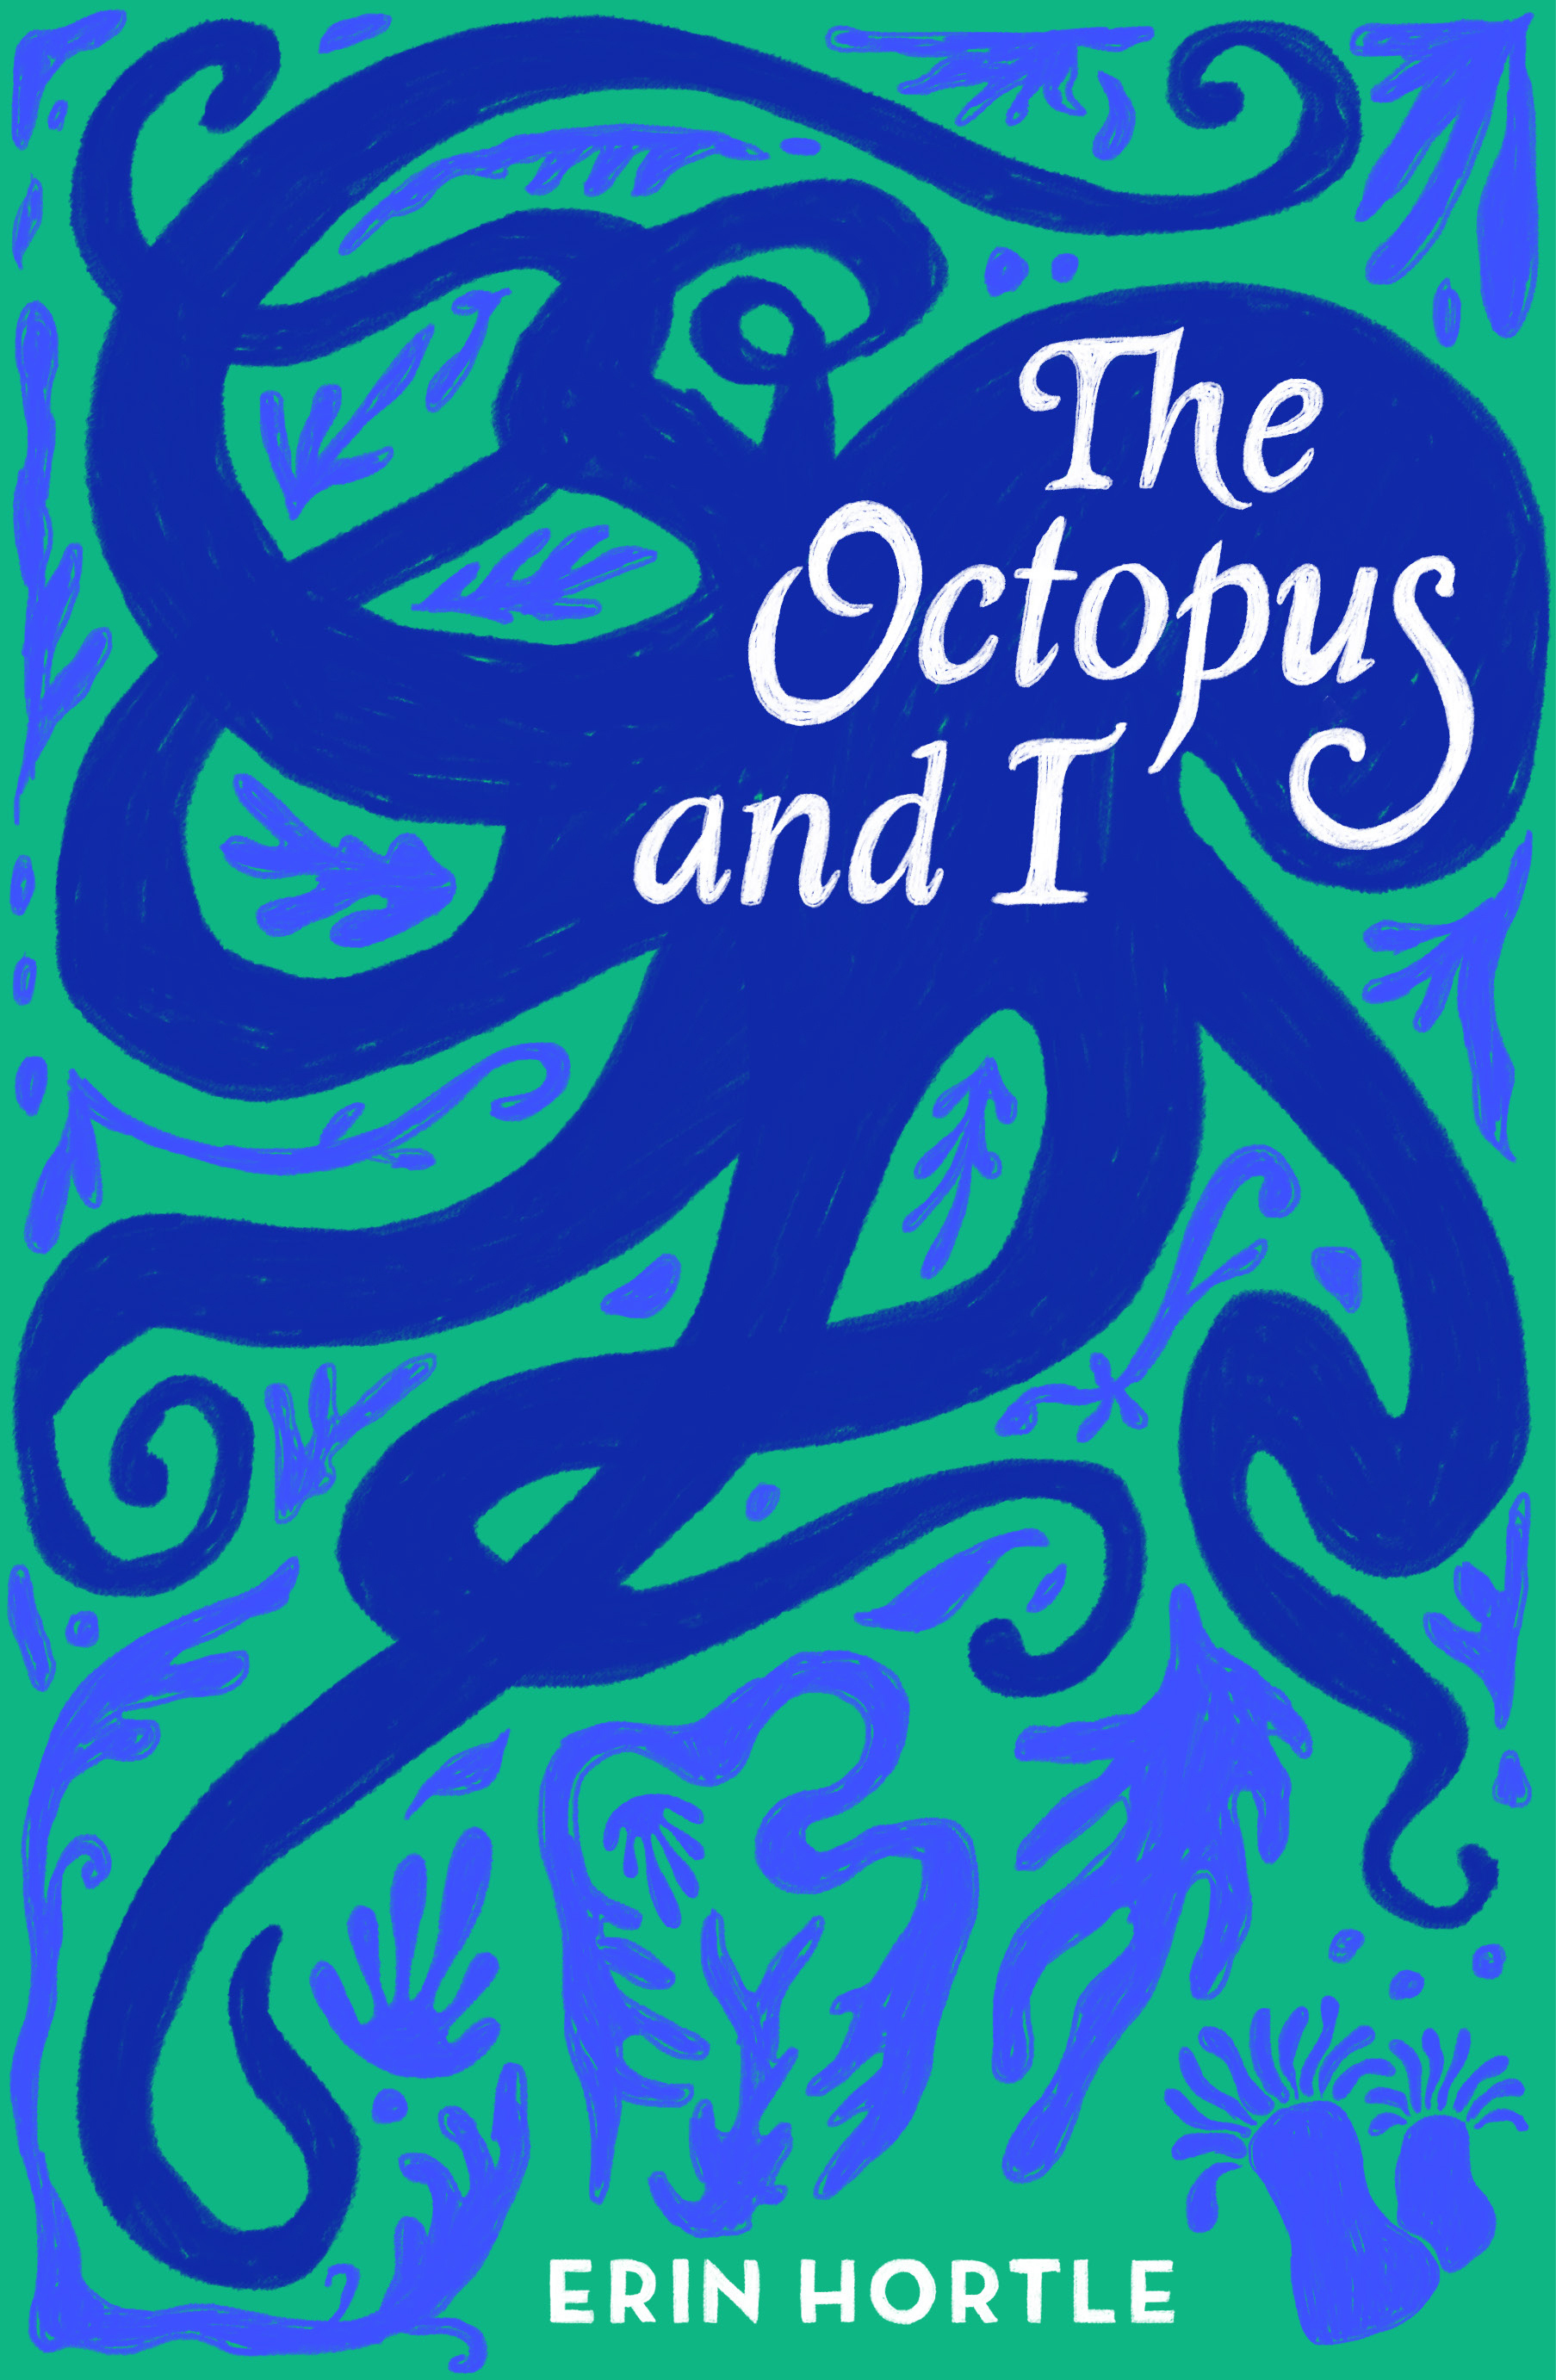 The Octopus and I